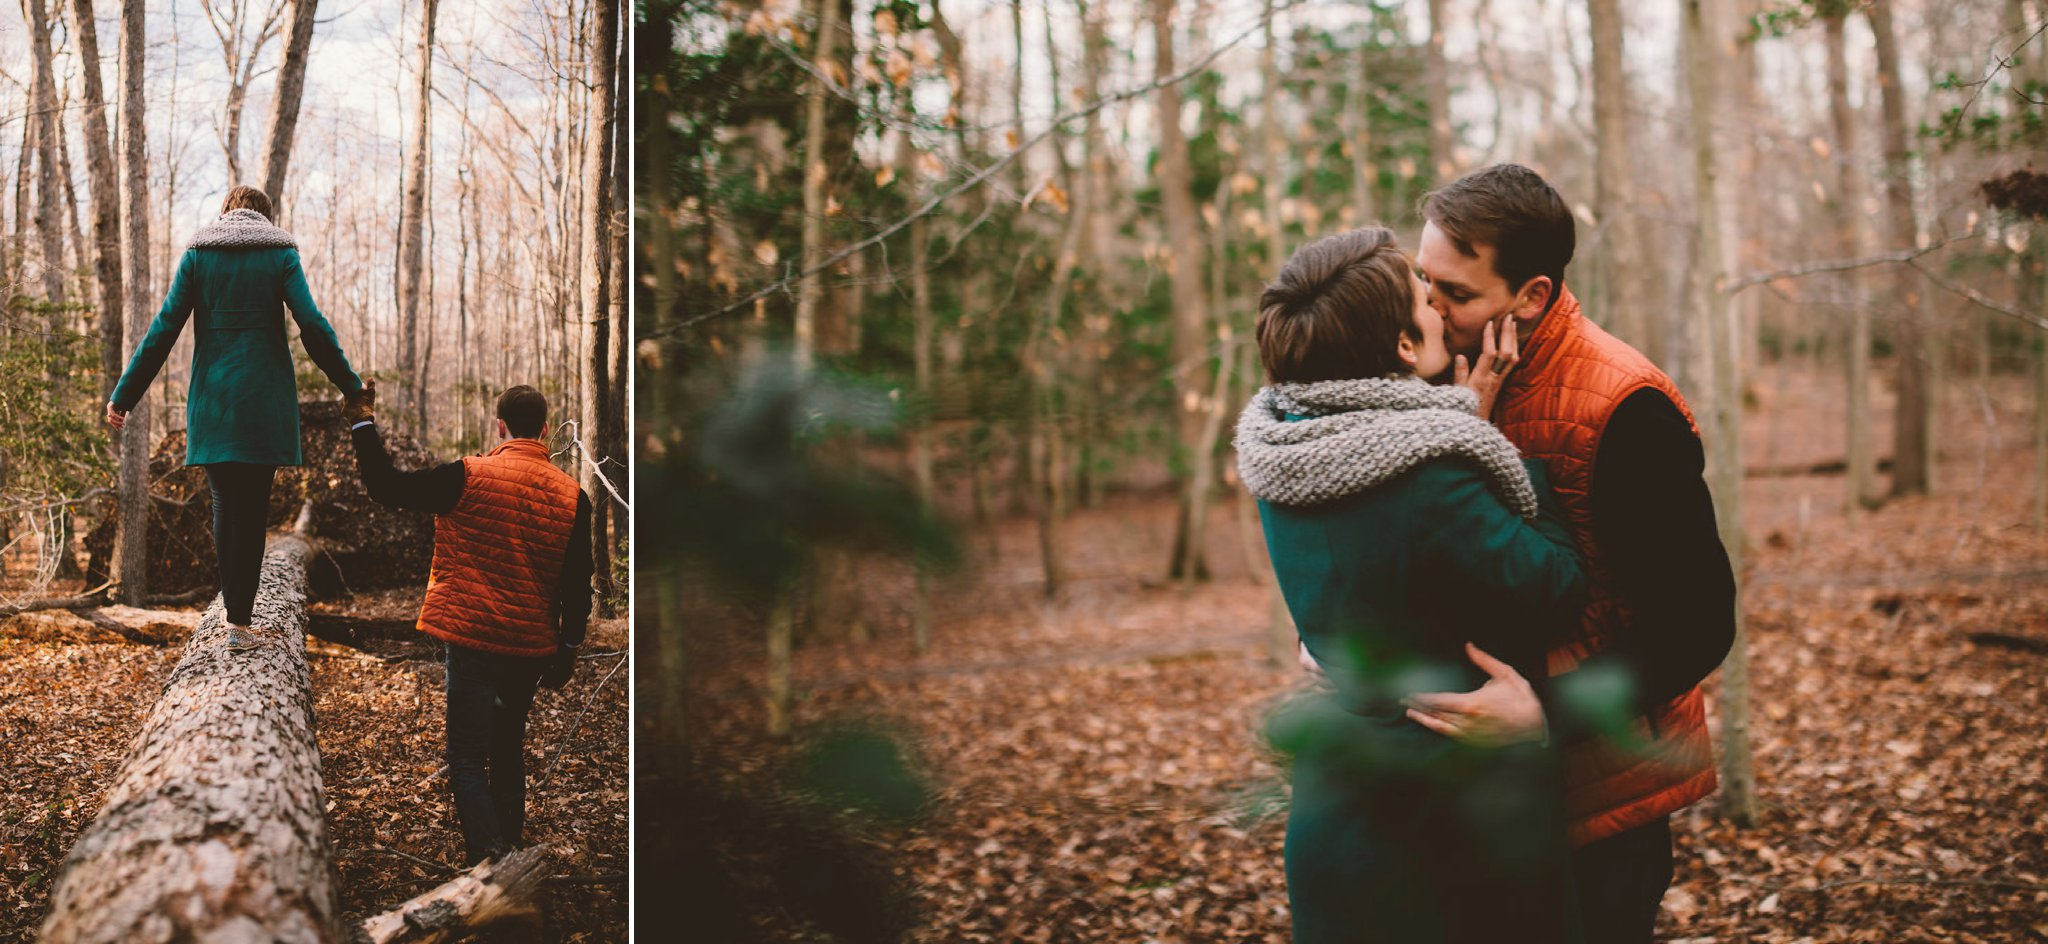 Feminist Wedding Photography Carly Romeo Photography Richmond VA Engagement Couple Shoot Advice Comfortable Planning How To Woods Kiss